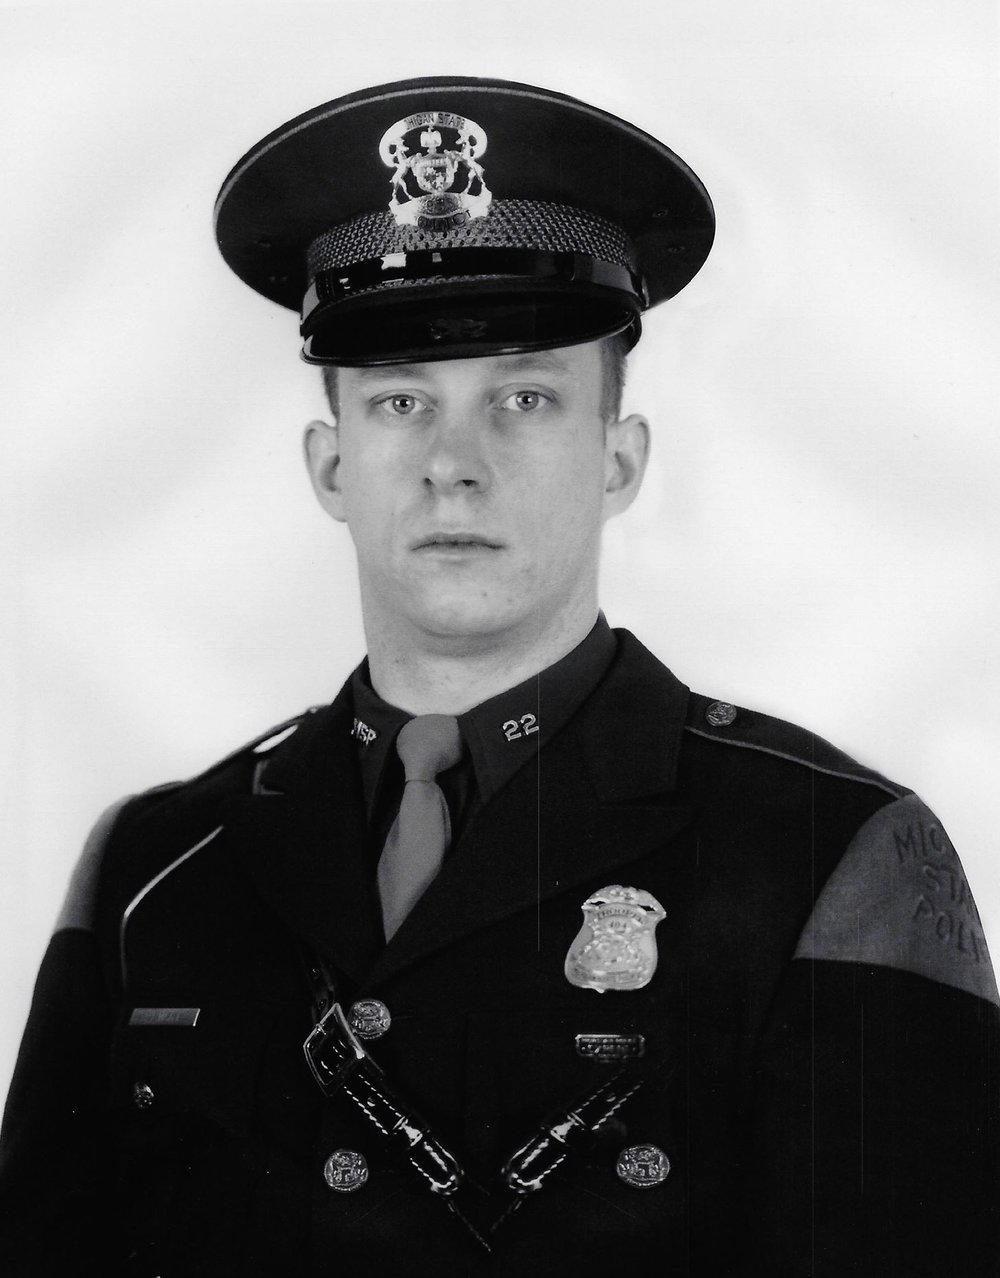 Richard L. Migala, during his time as a Michigan State Trooper